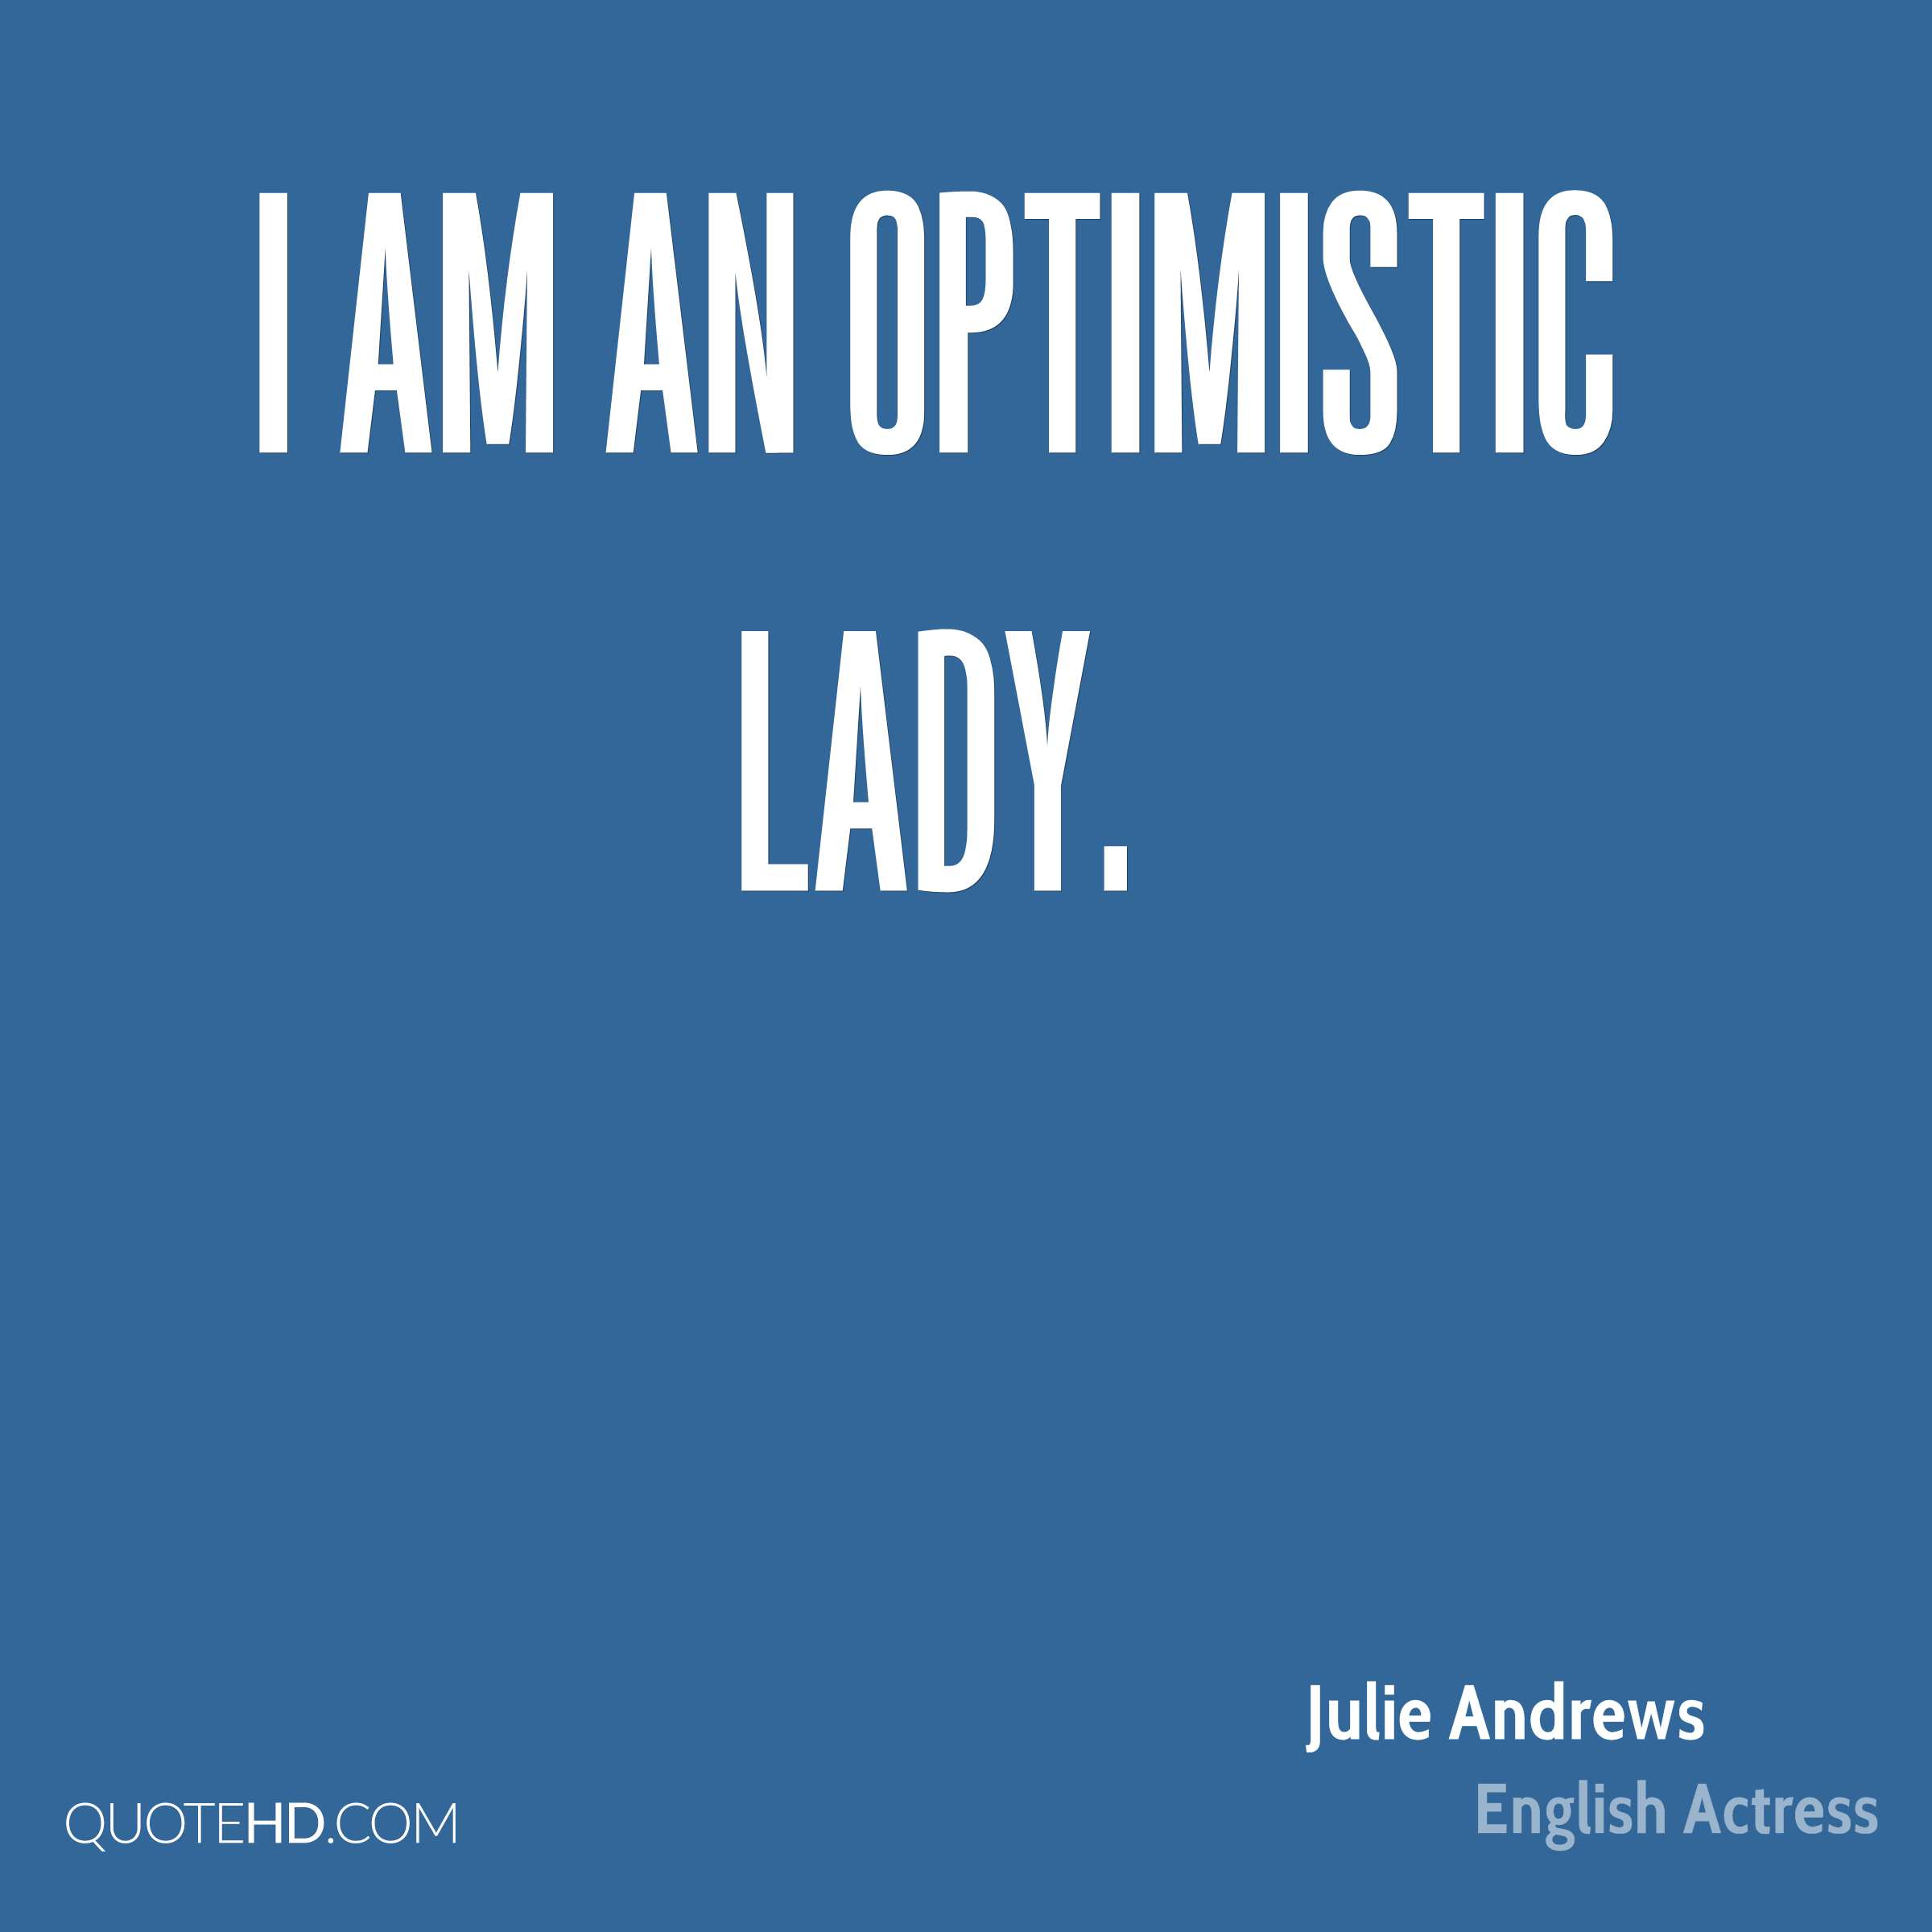 I am an optimistic lady.